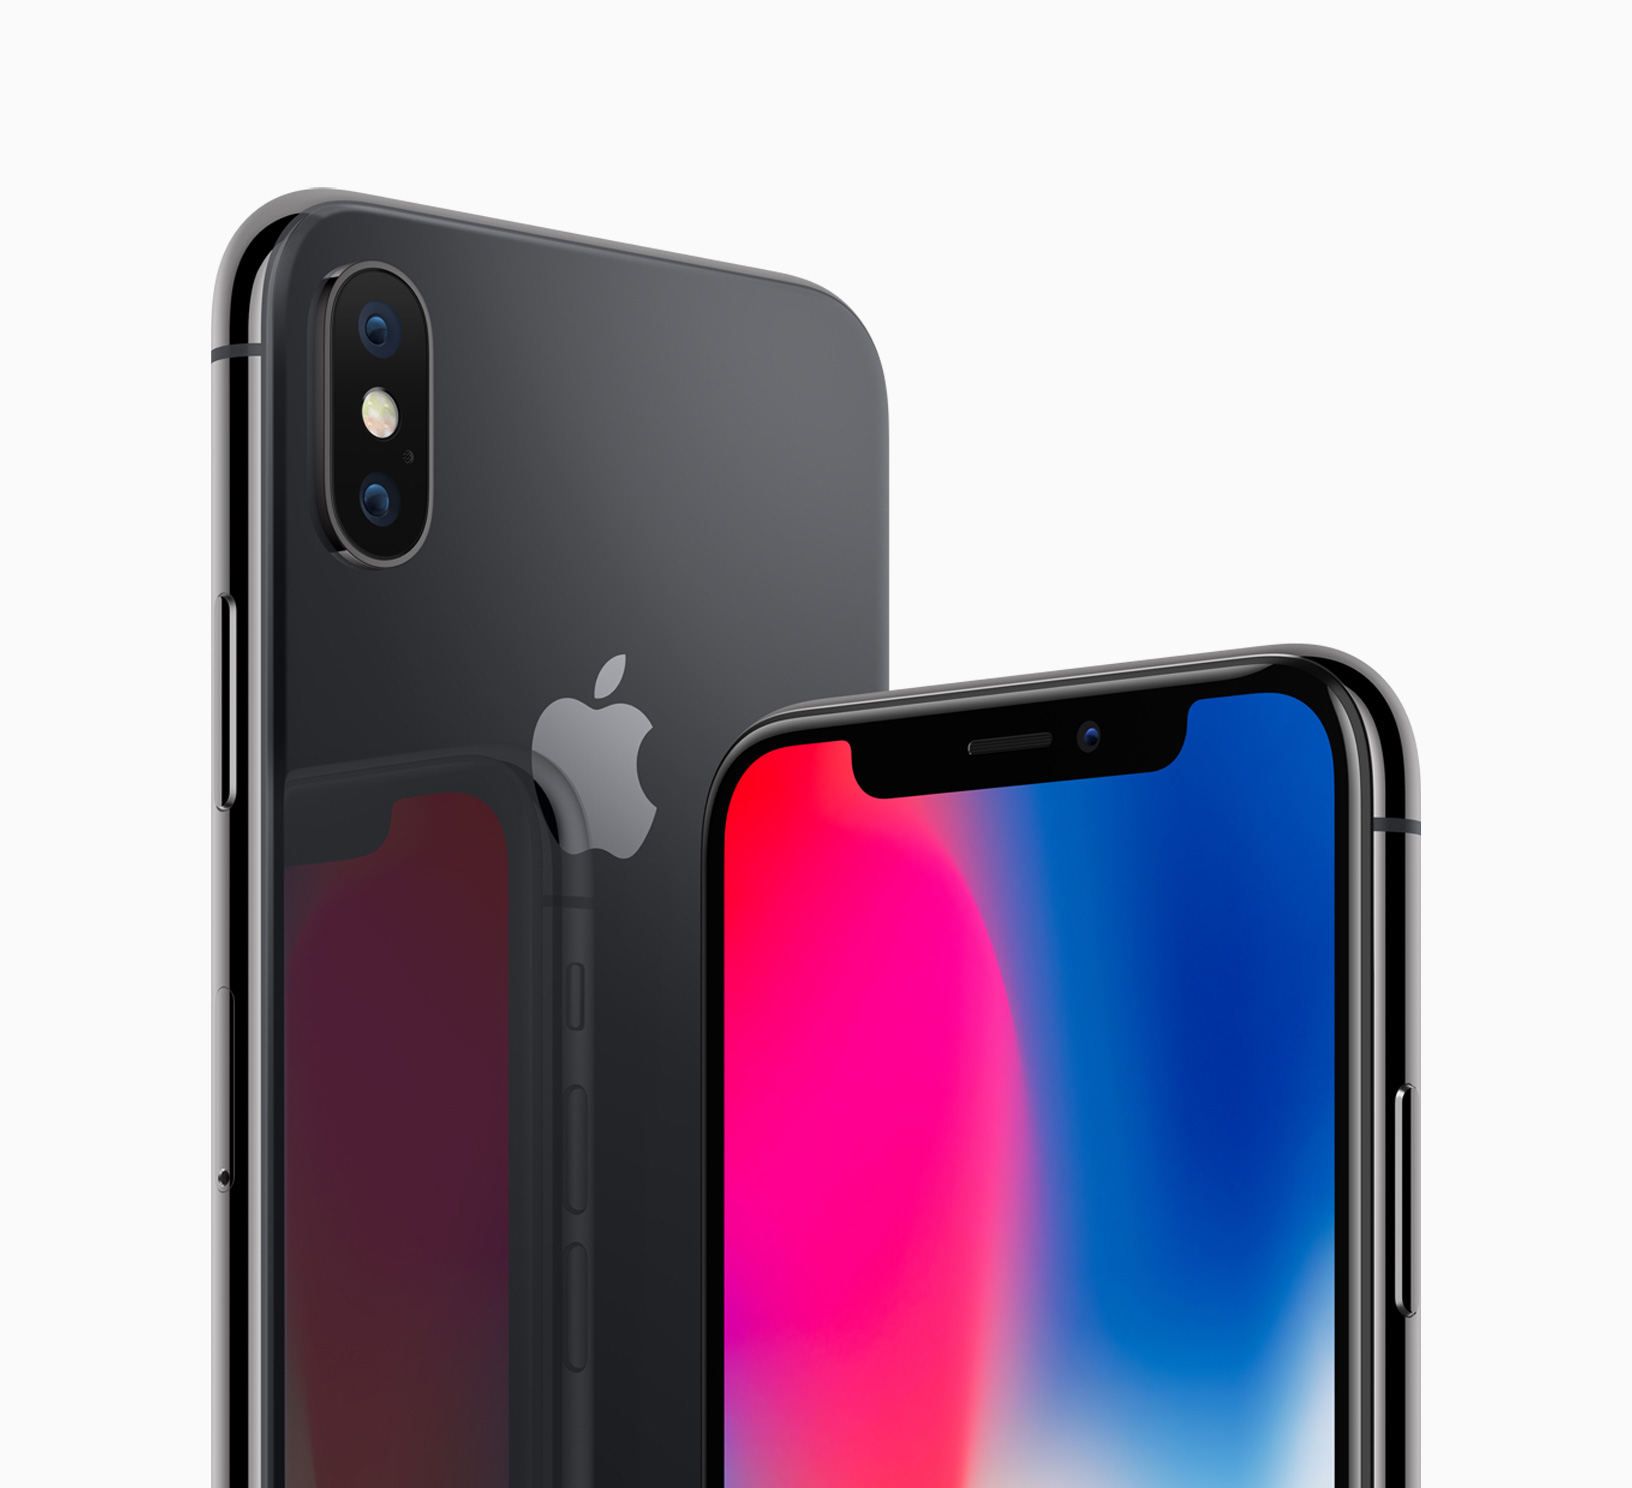   Source: Apple   Apple's iPhone X in Space Gray